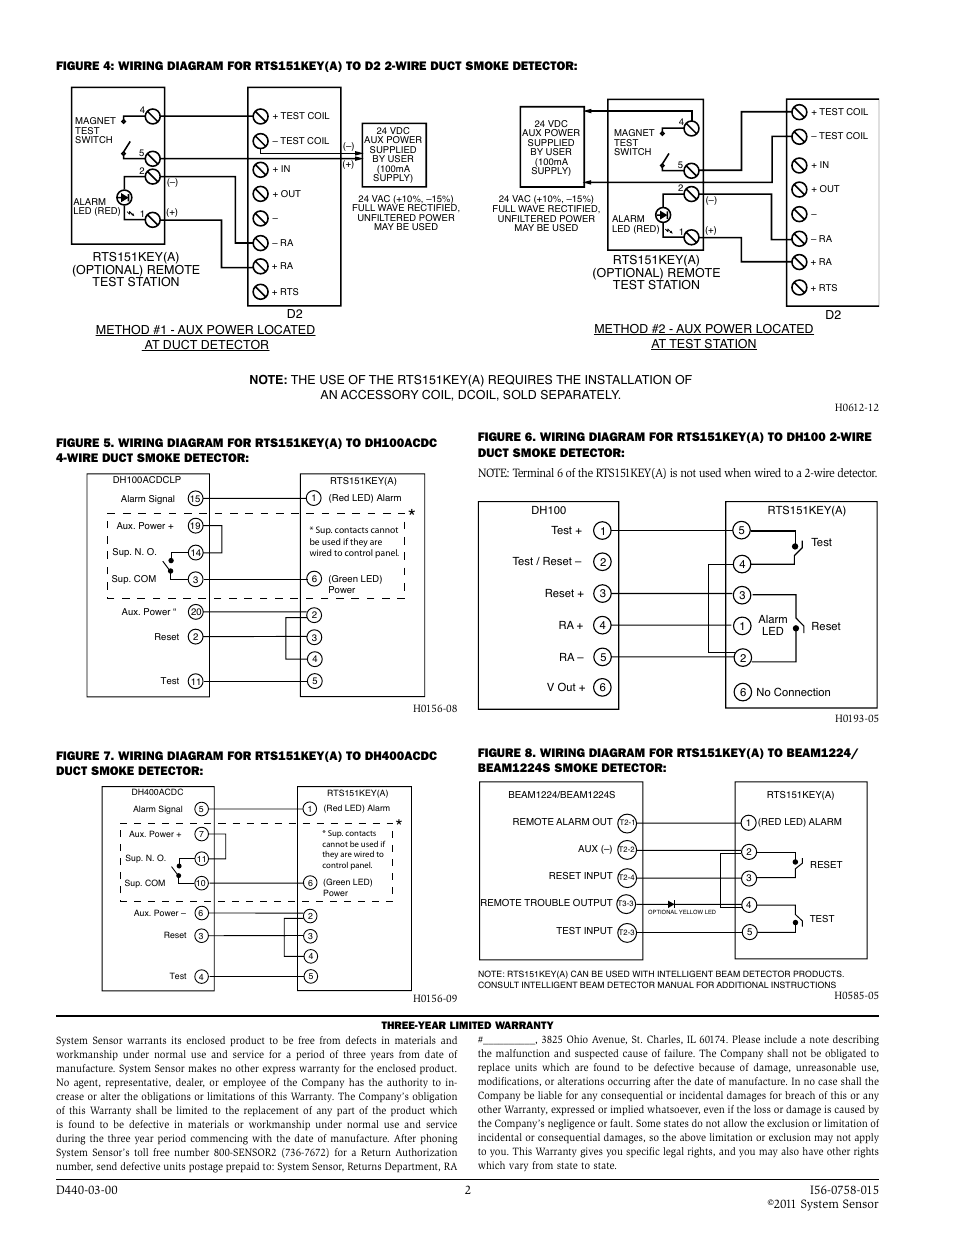 Duct Detector Wiring Diagram Led Circuit And Hub How To Wire A Smoke System Sensor Rts151key User Manual Page 2 Also For Rh Manualsdir Com 4 Detectors